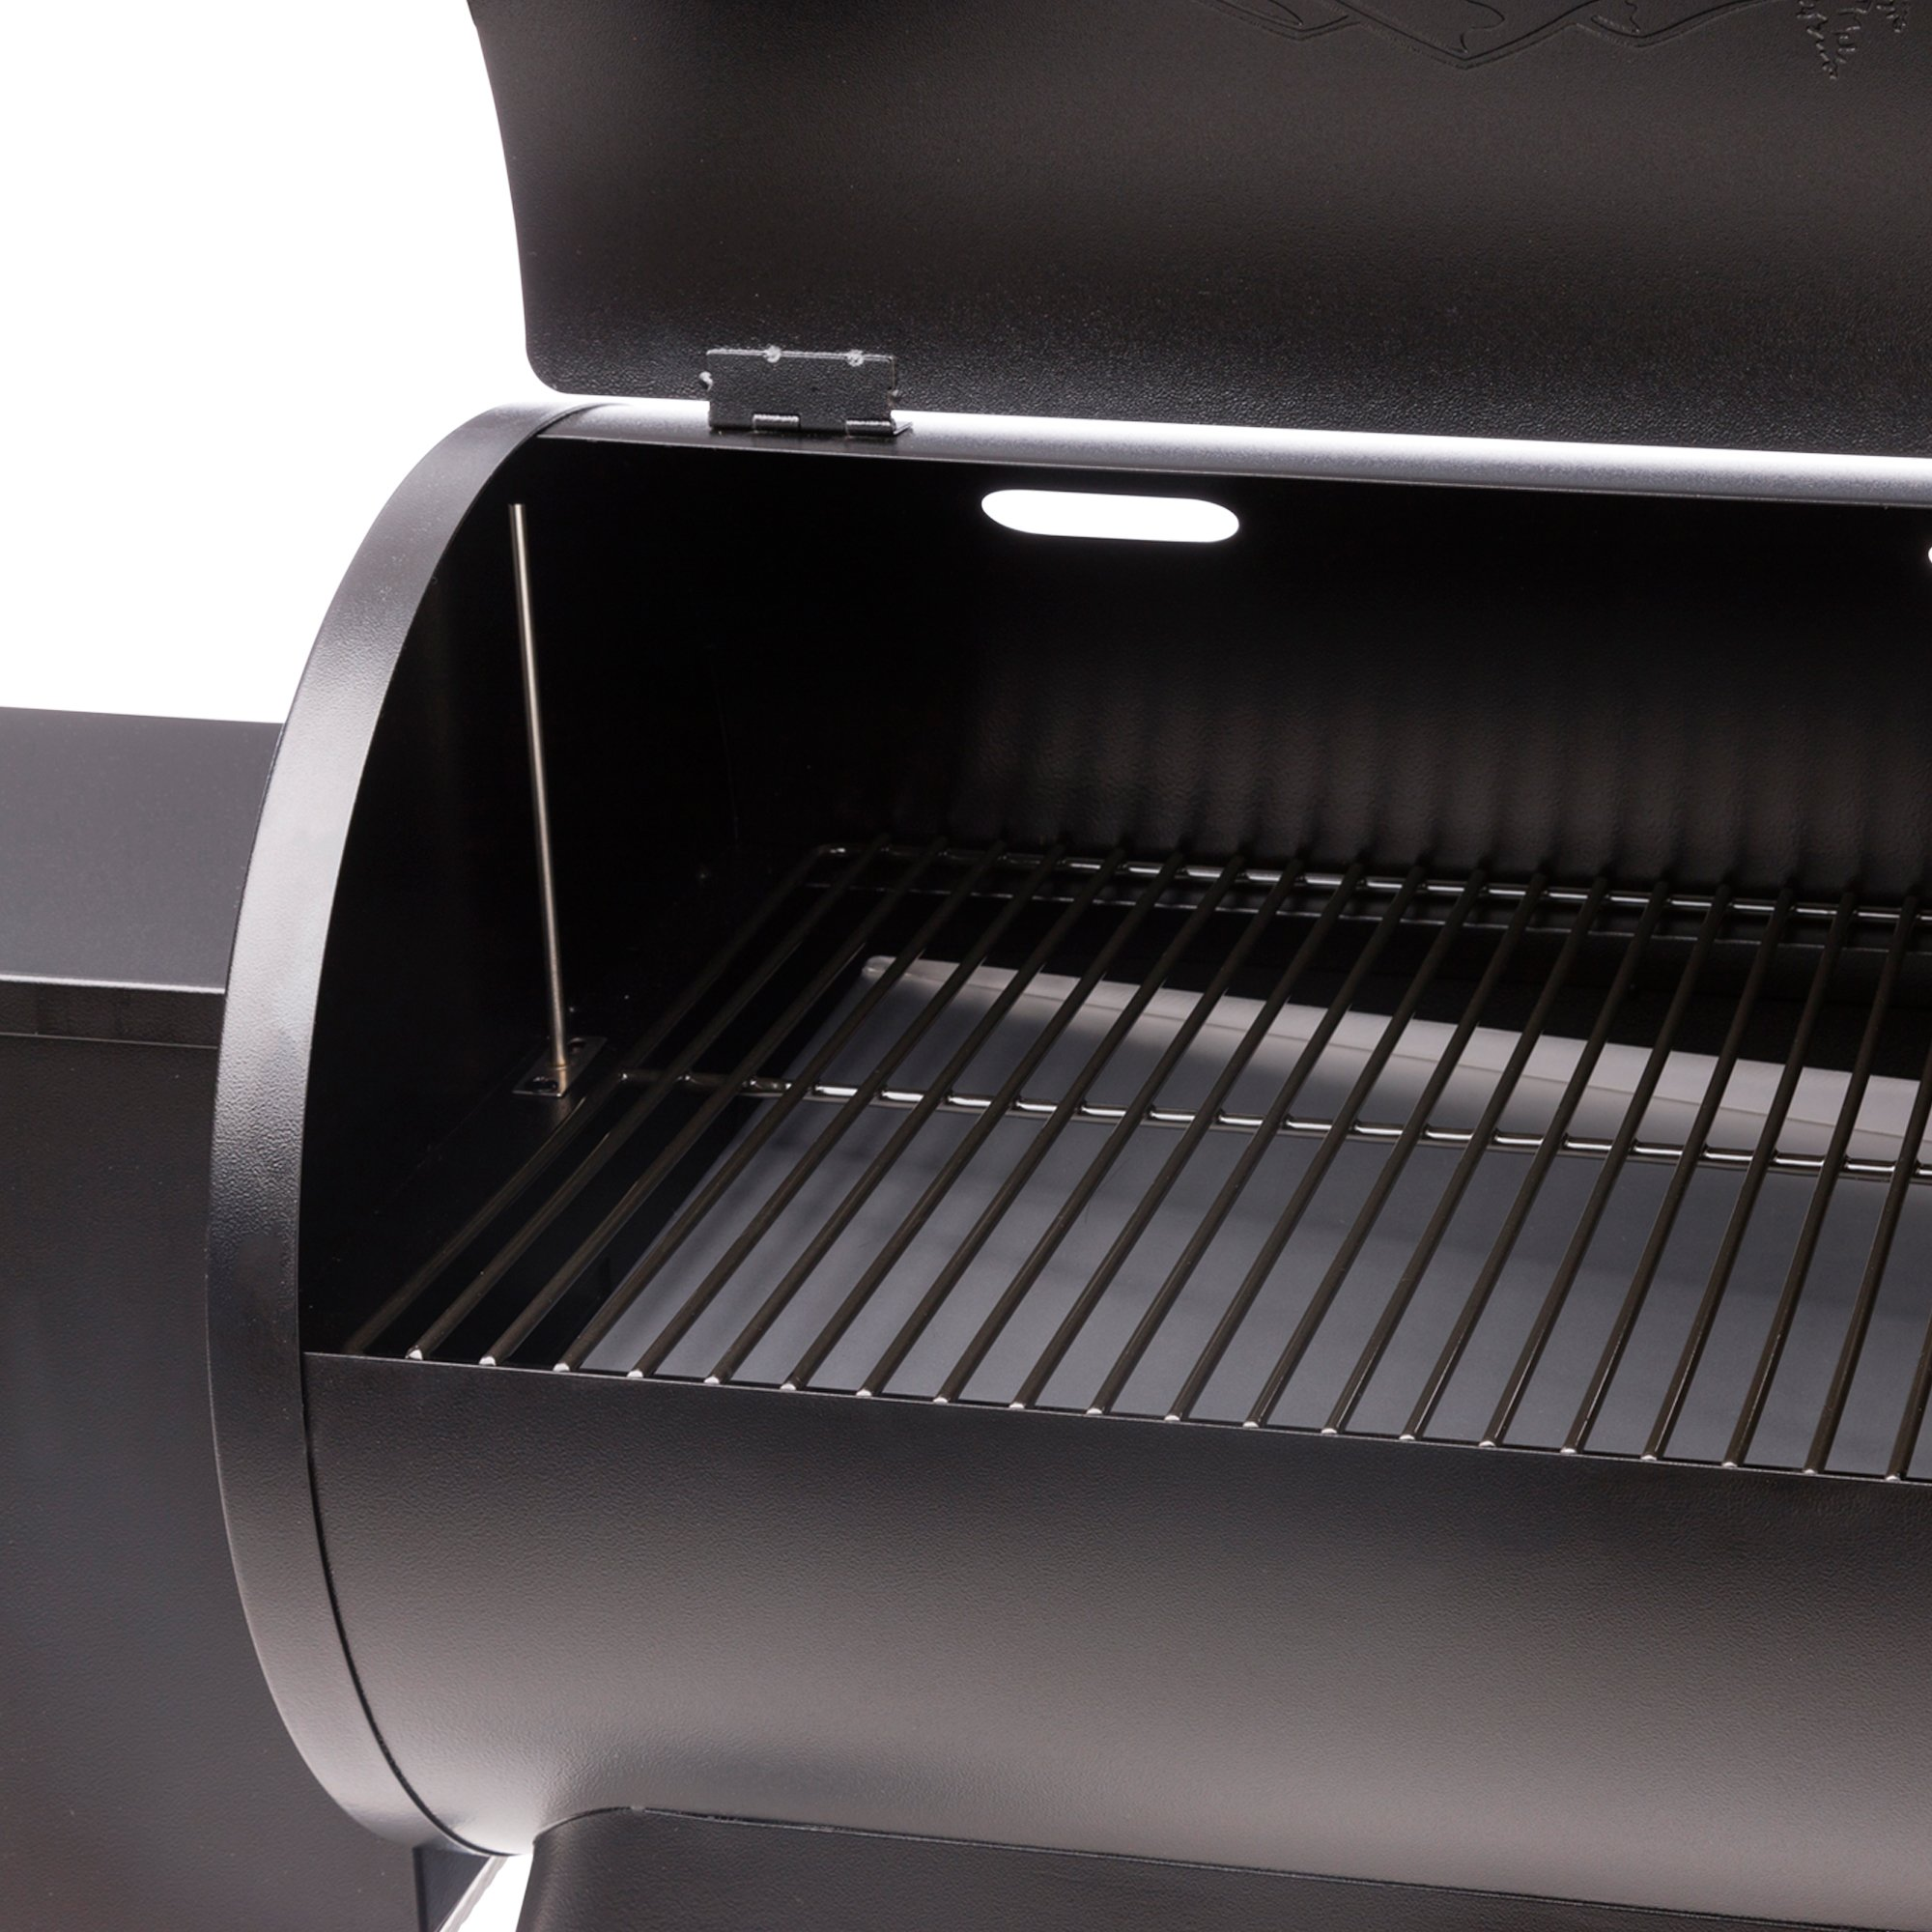 Traeger Grills Tailgater 20 Portable Wood Pellet Grill and Smoker - Grill, Smoke, Bake, Roast, Braise, and BBQ (Blue) by Traeger (Image #5)